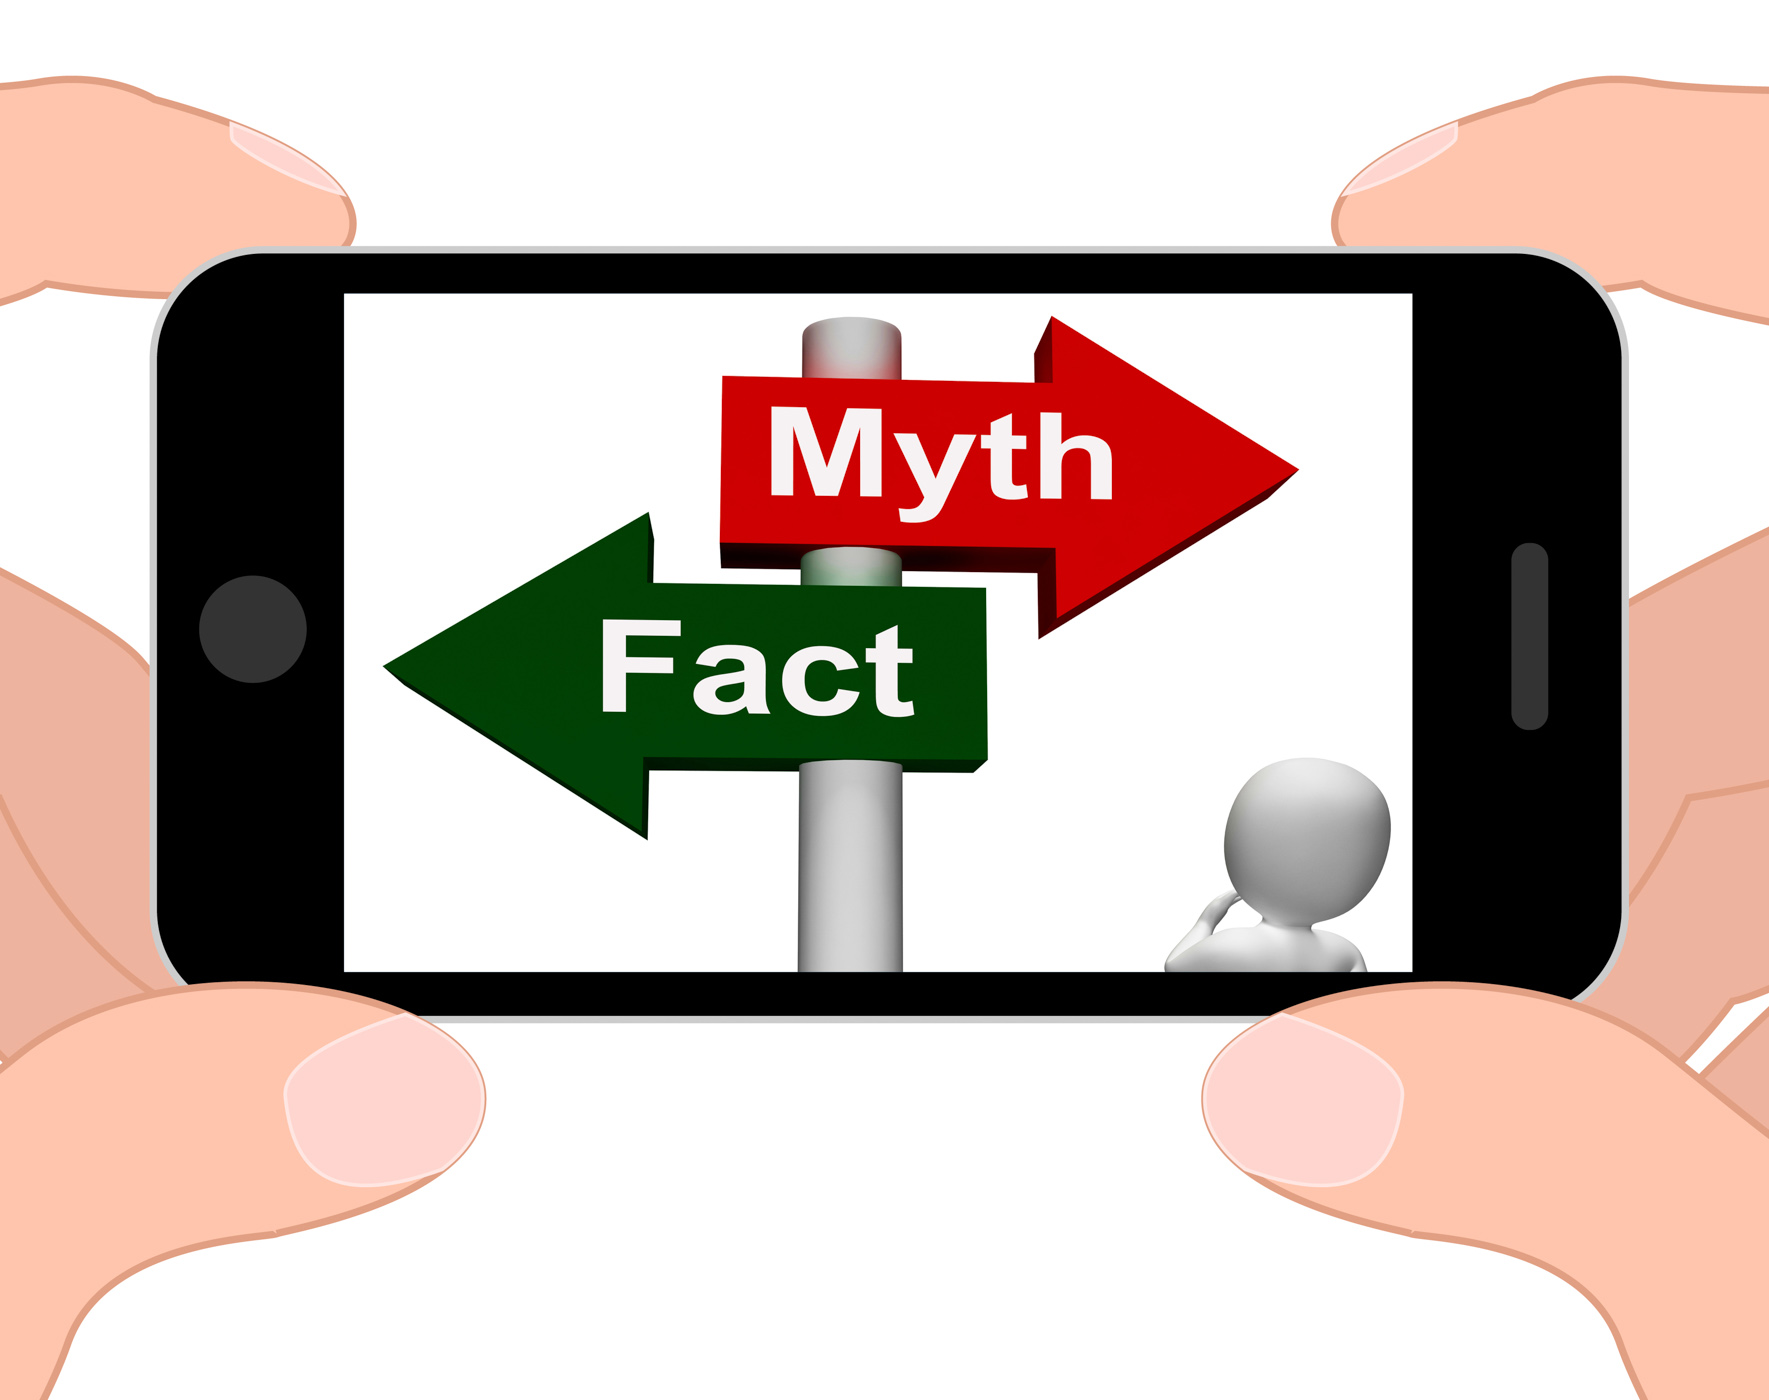 Fact Myth Signpost Displays Facts Or Mythology, 3d, Phone, Web, Truth, HQ Photo